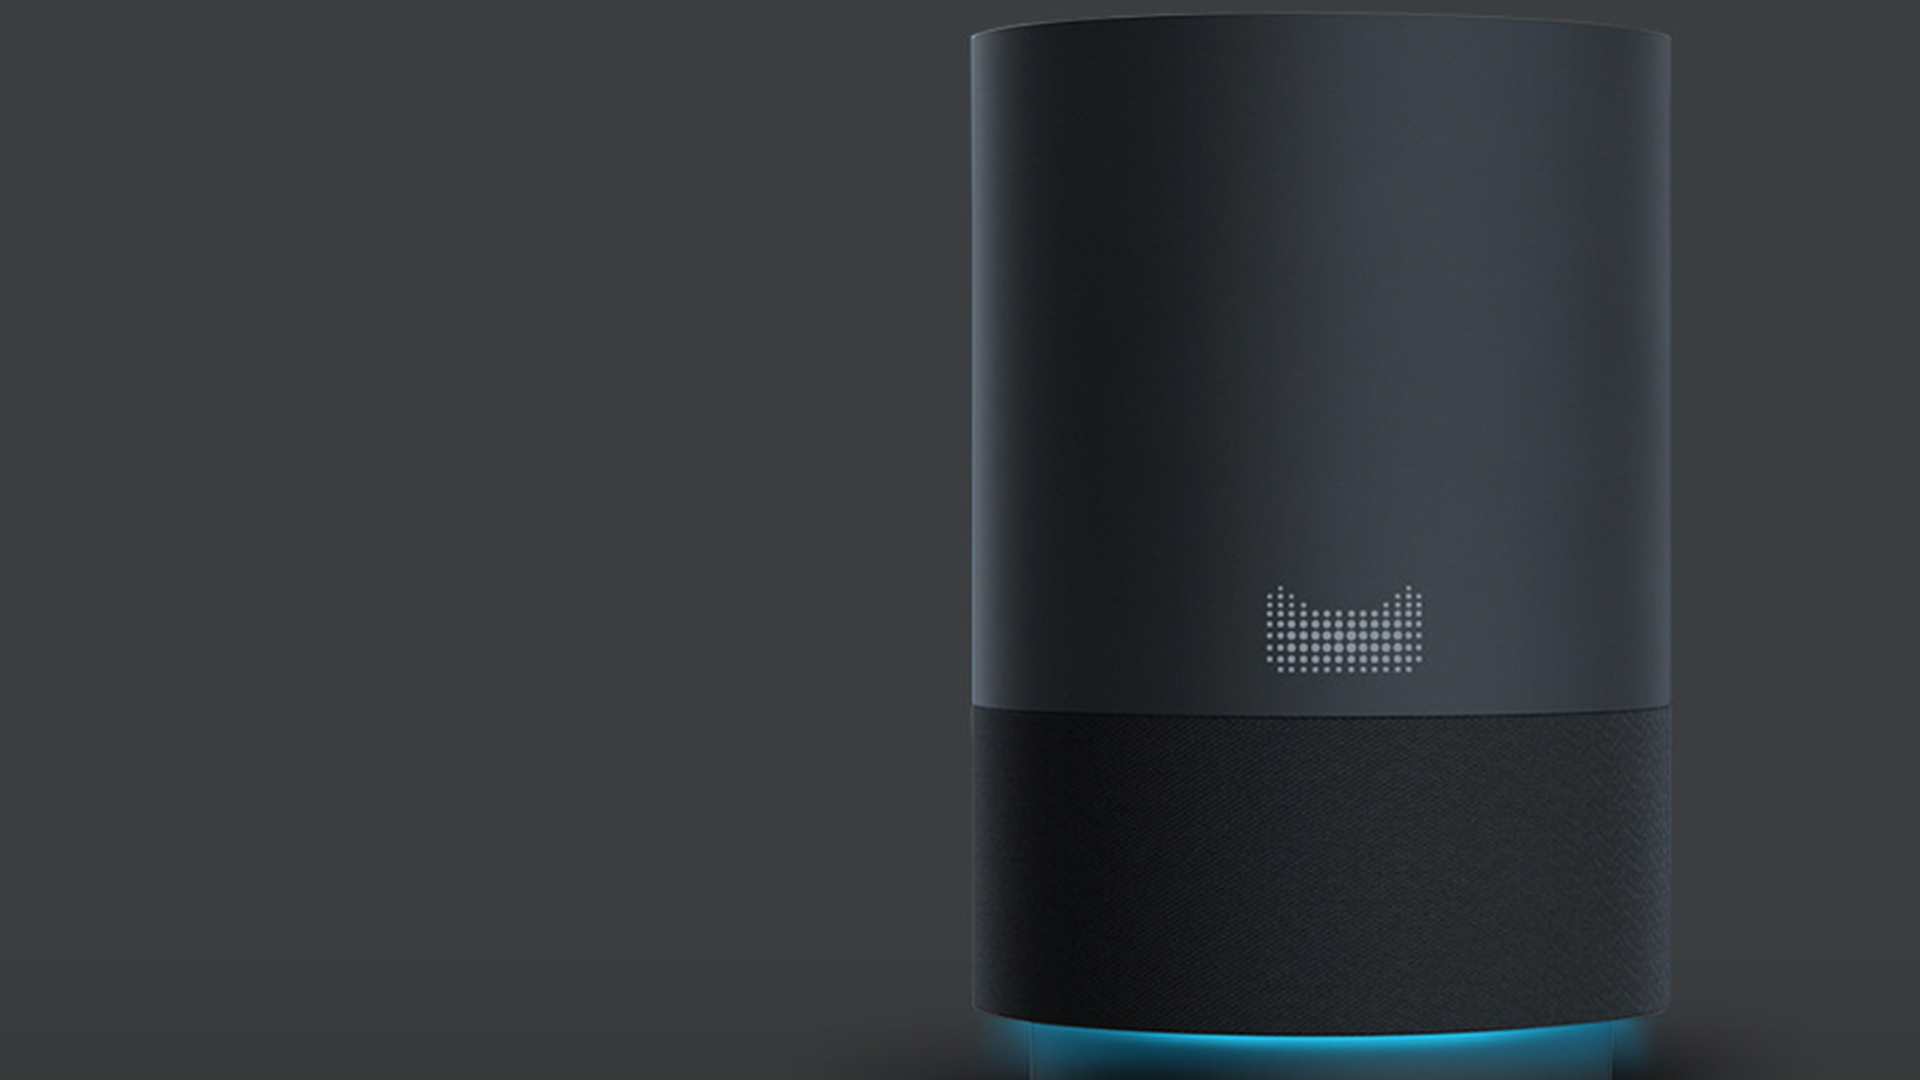 China's Xiaomi and Alibaba want their smart speakers in